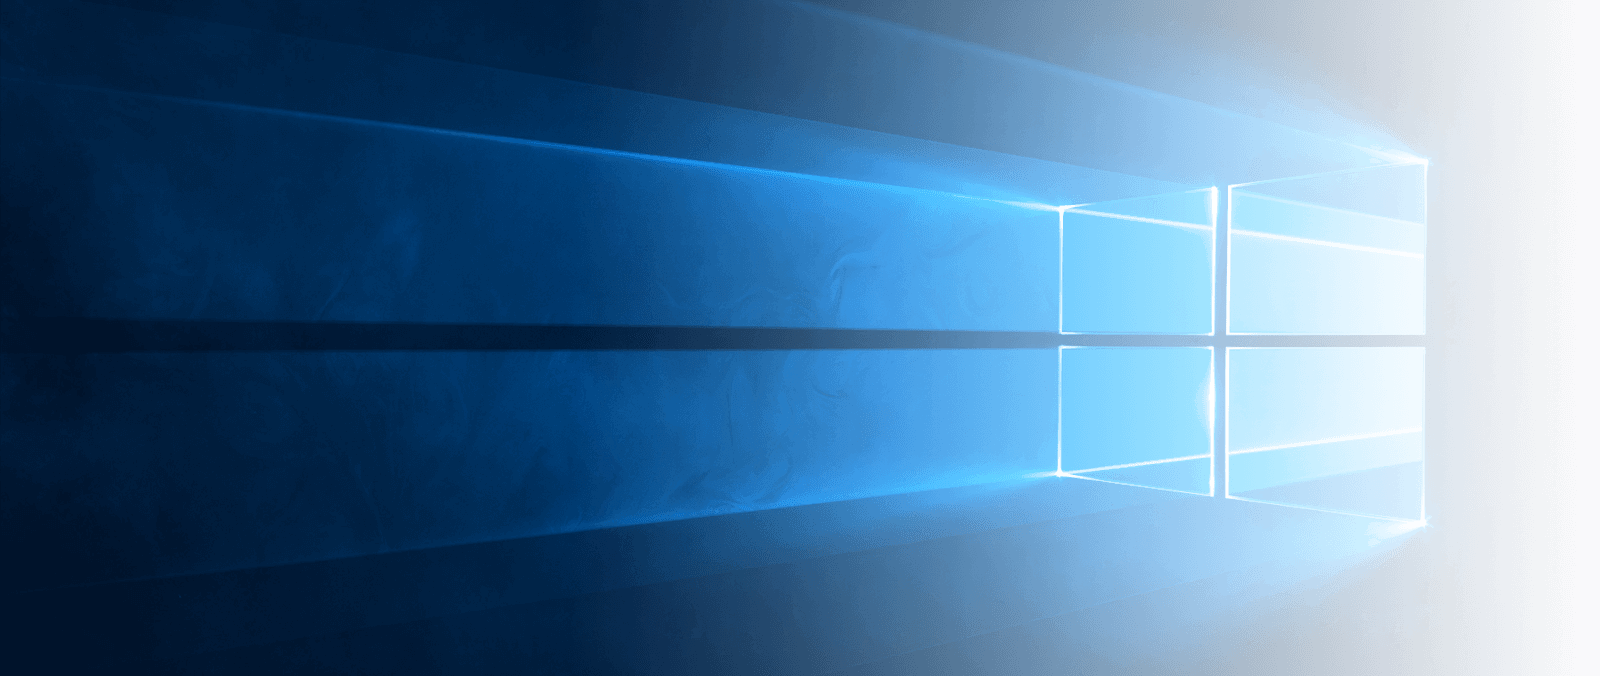 how to fix missing icons on windows